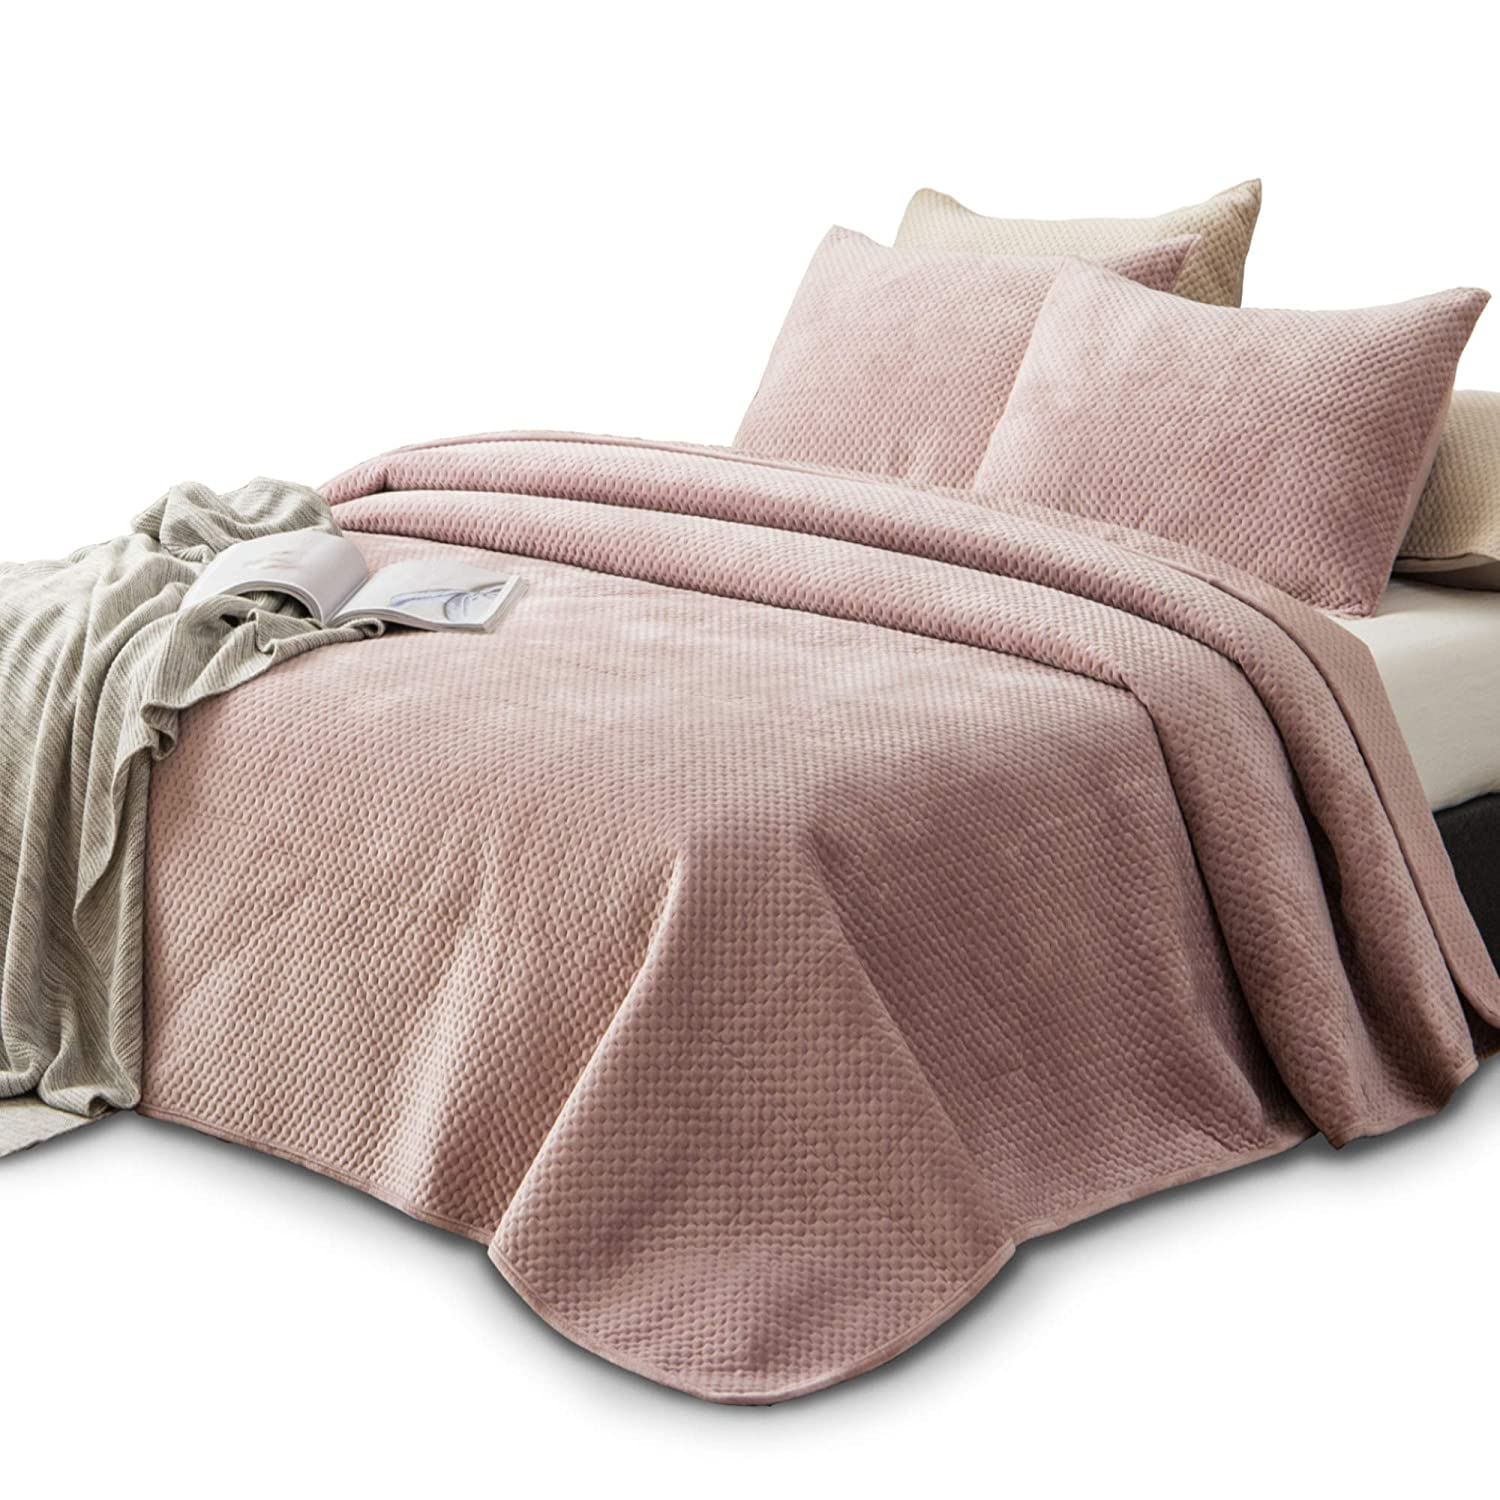 KASENTEX Plush Poly-Velvet Lavish Design Quilt Set with Brushed Microfiber - Luxurious Bedding Soft & Warm Coverlet - Machine Washable Coverlet (Dust Rose Pink, Queen + 2 Shams)